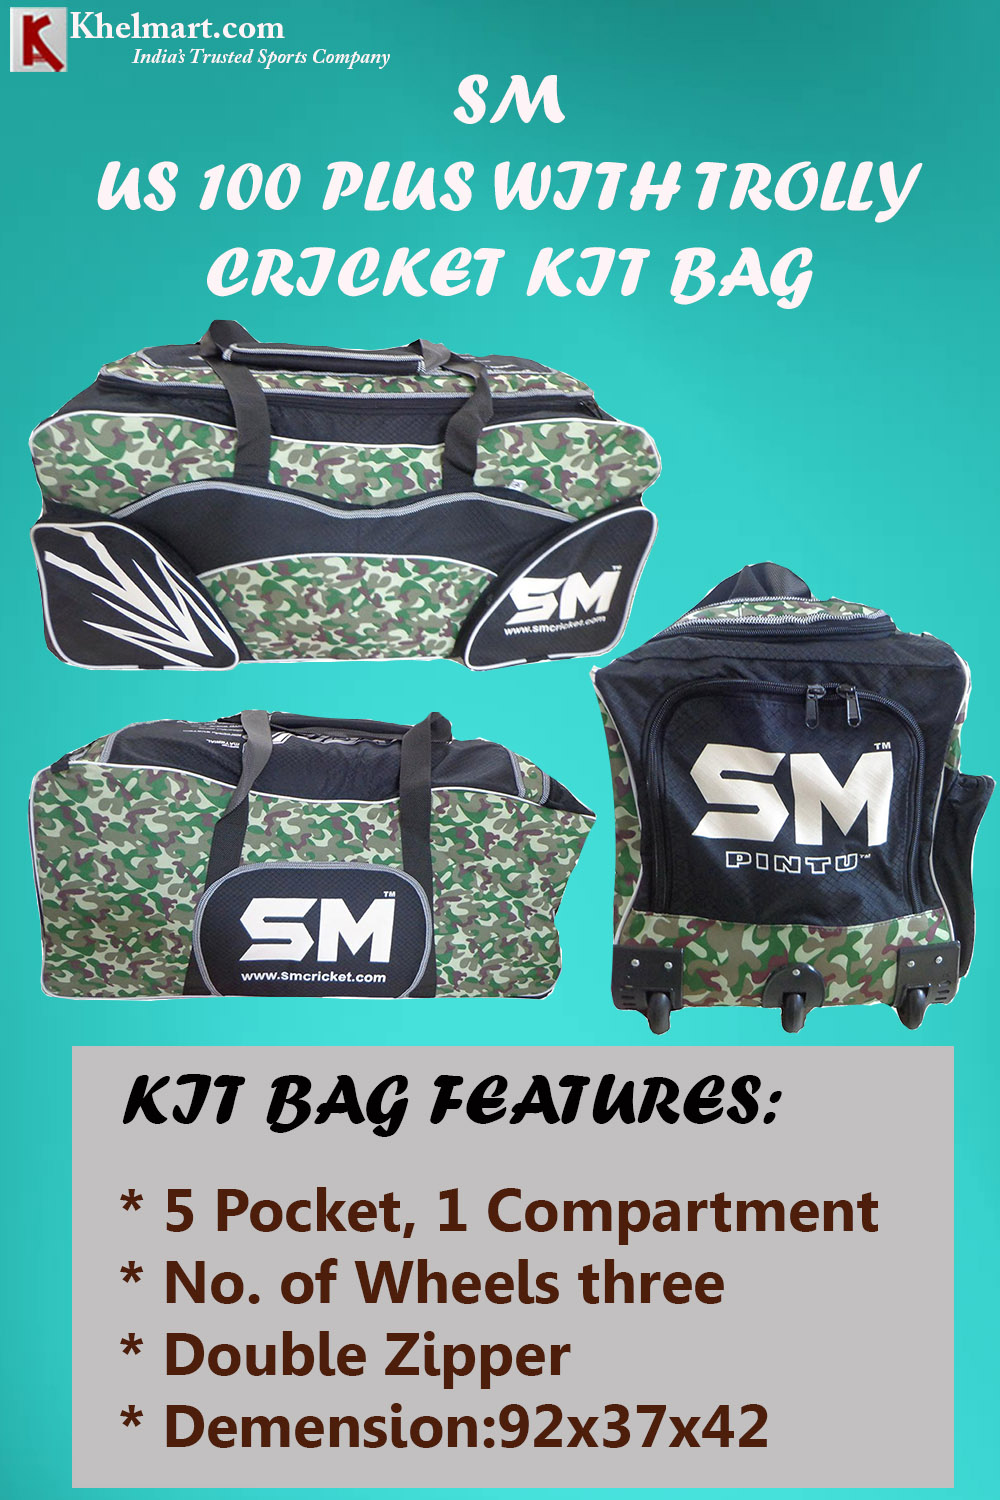 SM US 100 Plus Cricket Kit Bag